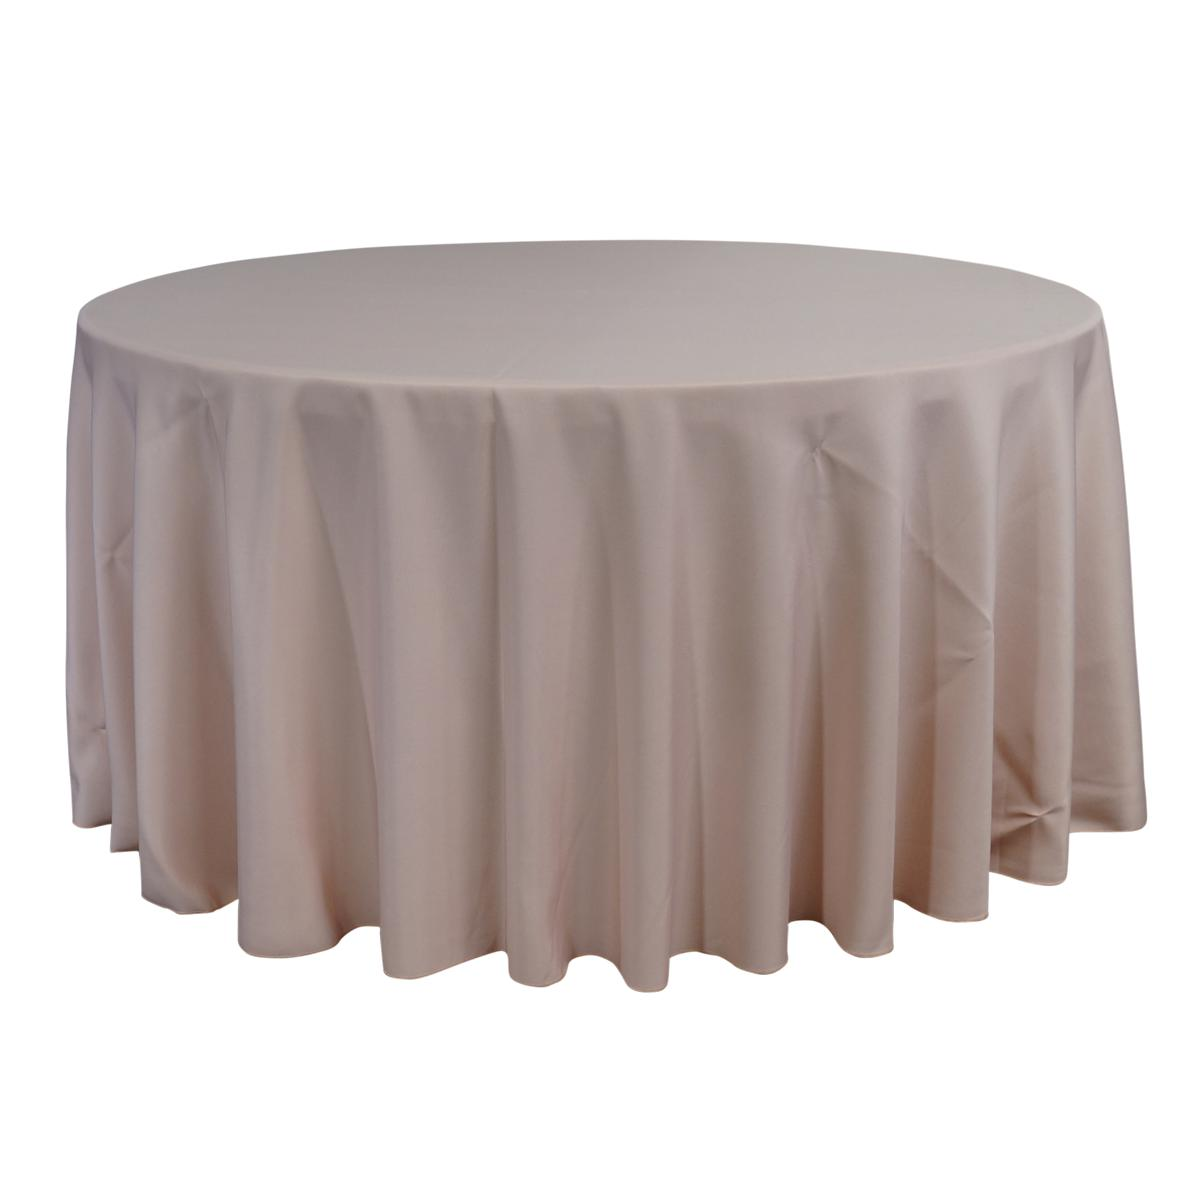 "Economy Polyester Poplin 120"" Round Tablecloth - Blush"